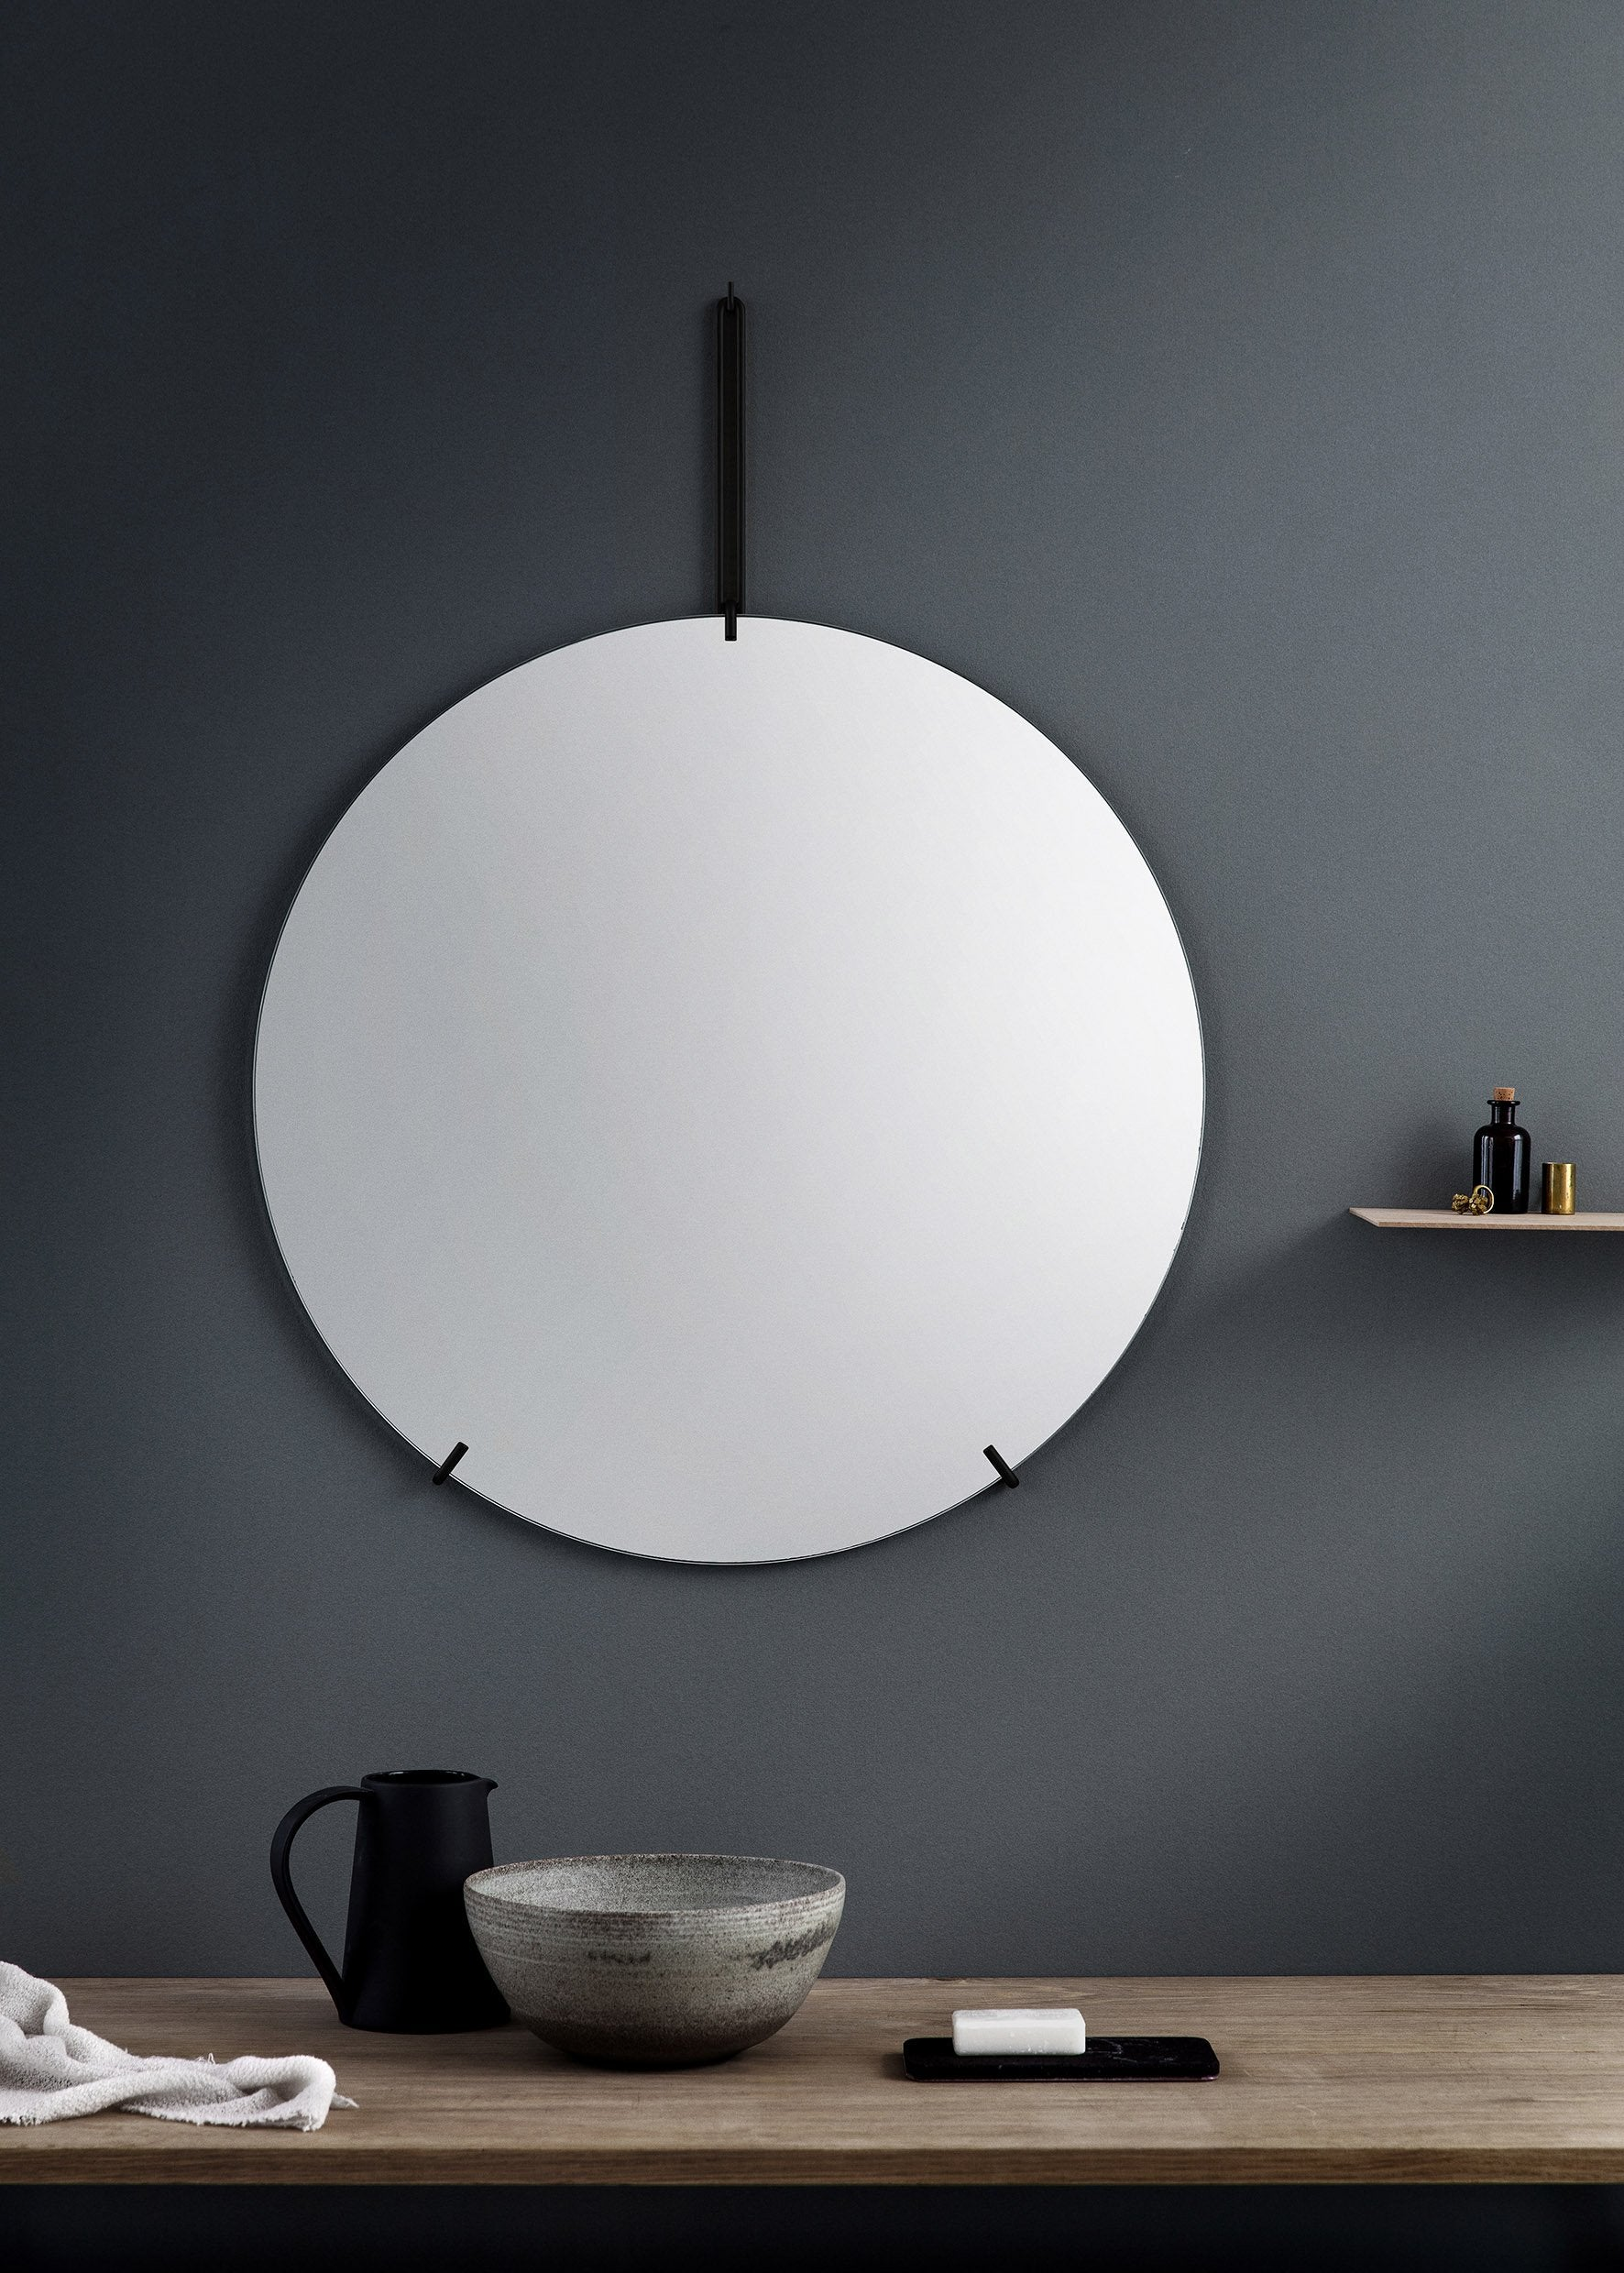 Wall Mirror — 70cm-Moebe-black-danish-interior-furniture-denmark-Average-design-toronto-canada